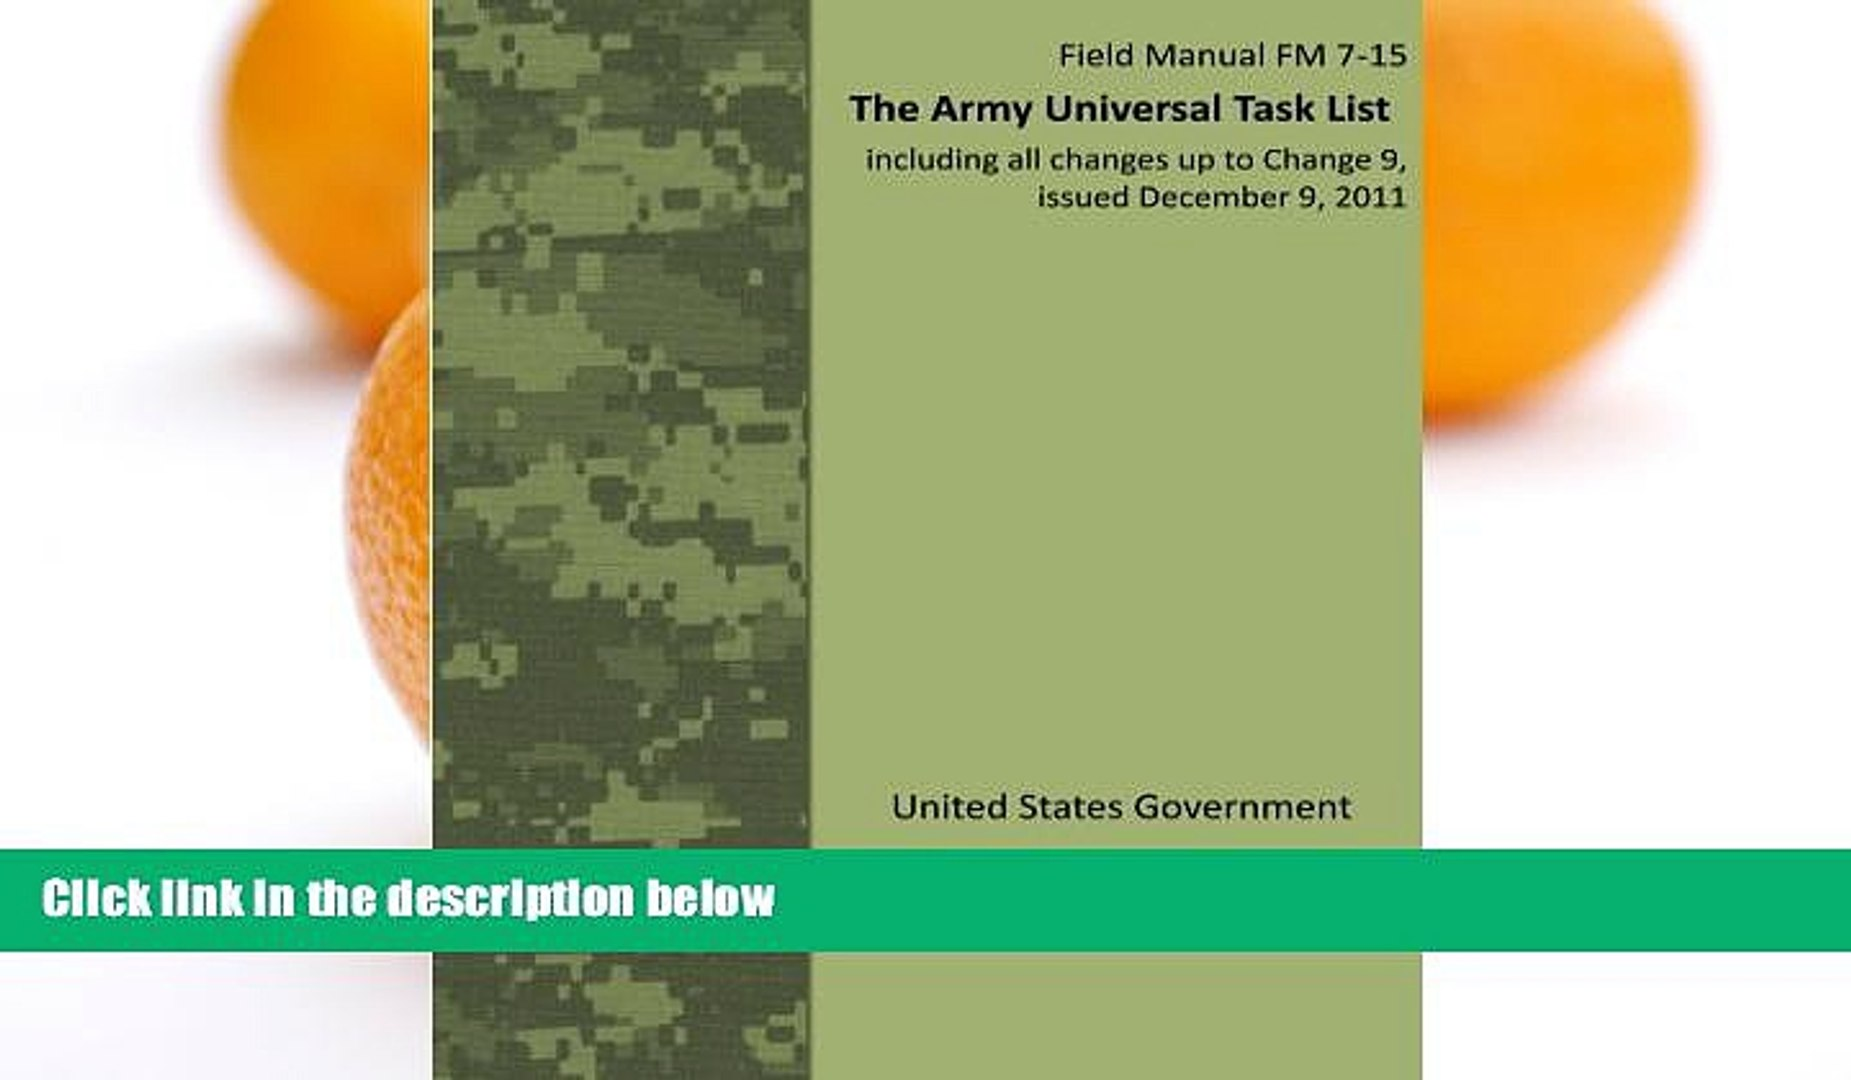 Pre Order Field Manual FM 7-15 The Army Universal Task List including all changes up to Change 9,